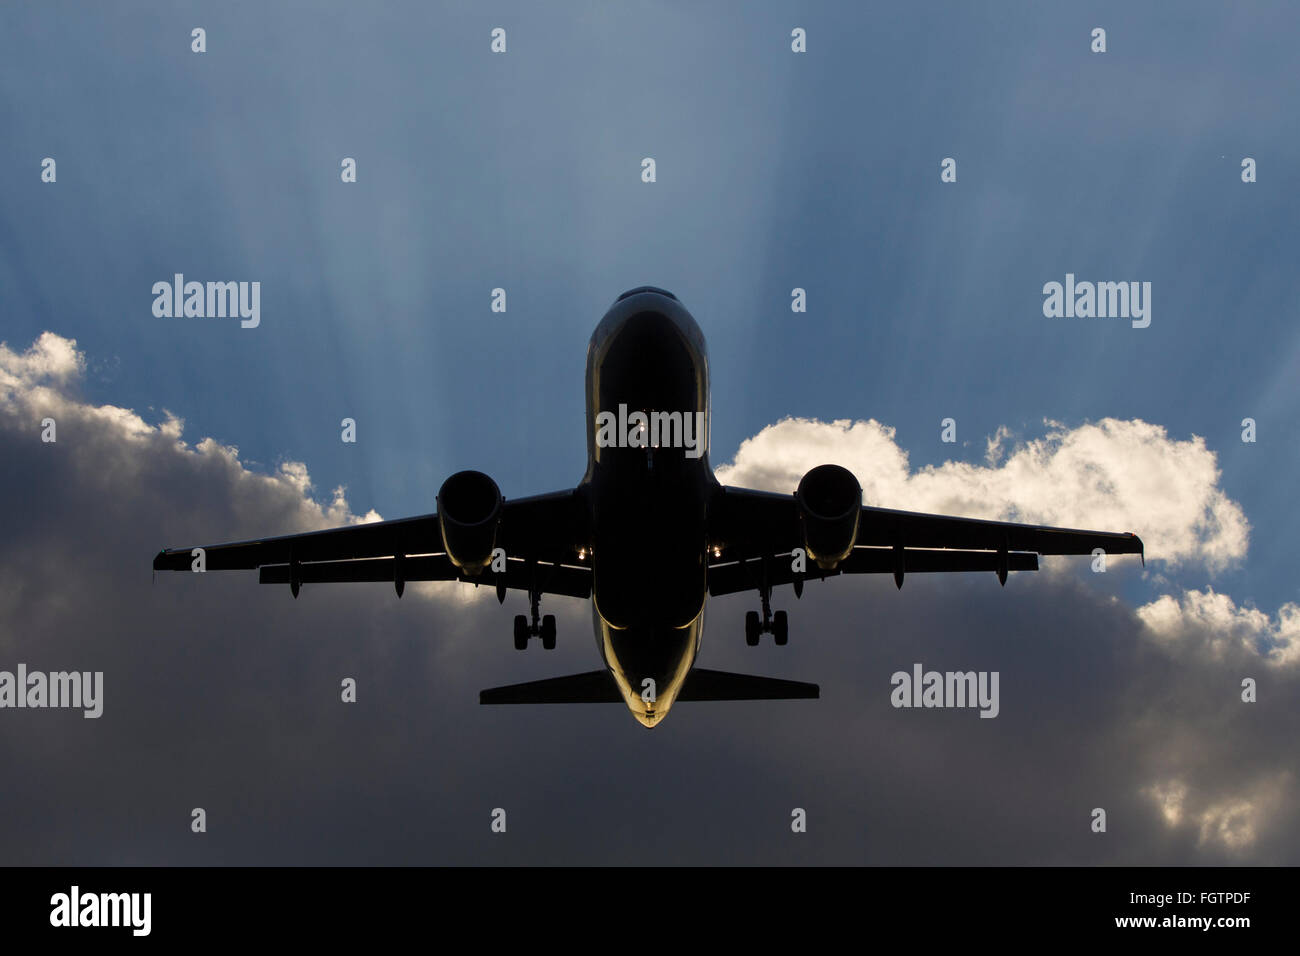 Airbus A320 landing at Heathrow with dramatic light effects in the